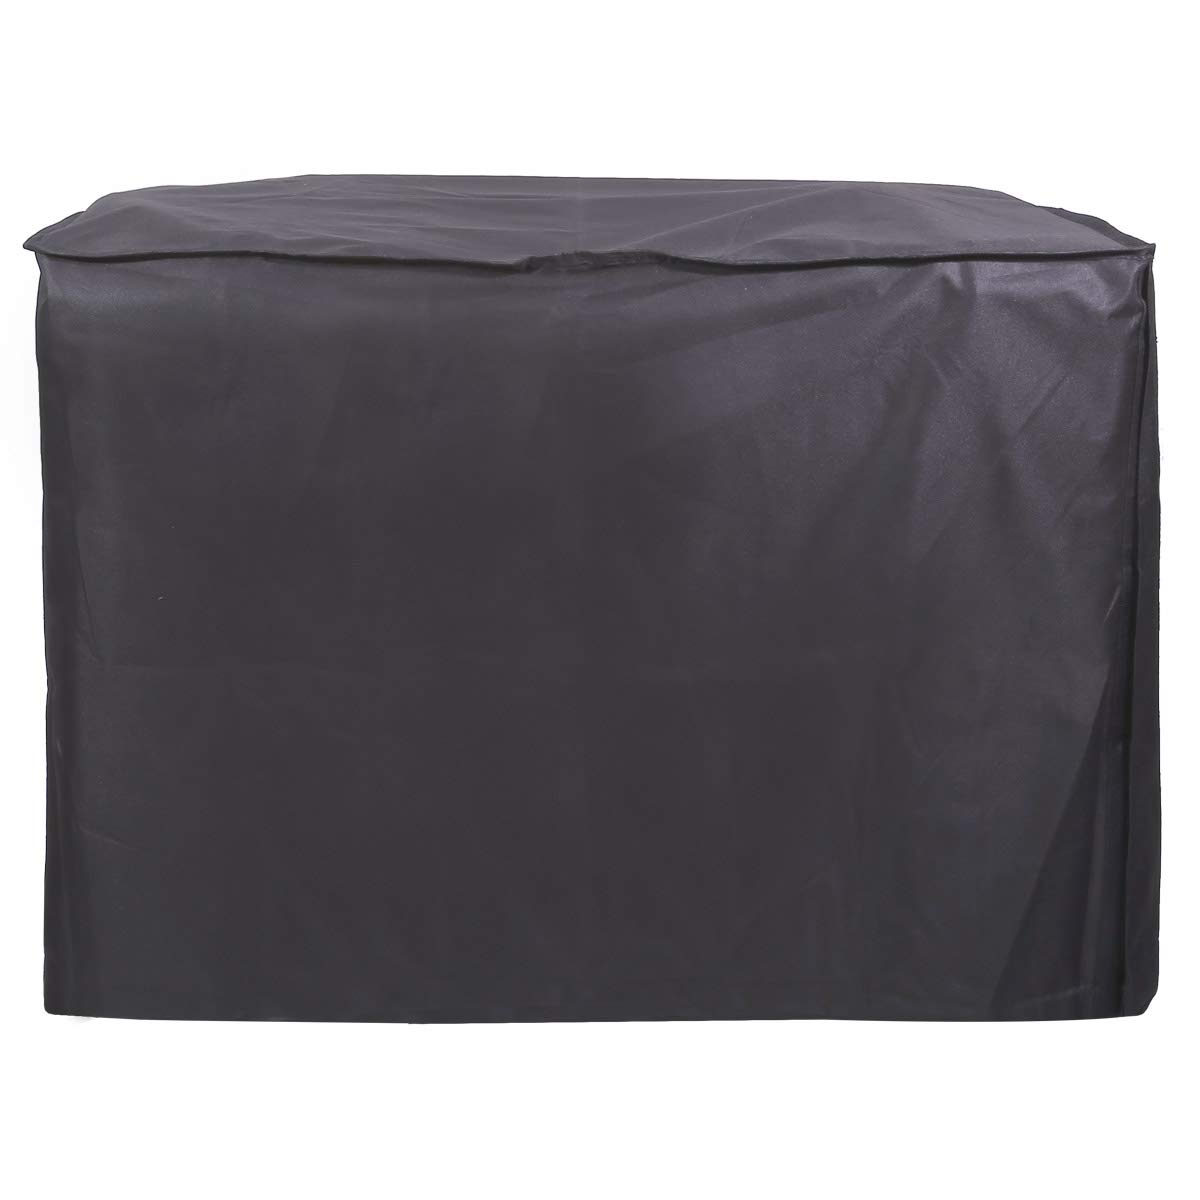 NKTM Waterproof Generator Cover 32 x 24 x 24 inch, for Most Generators 5000-10000 Watt, Black by NKTM